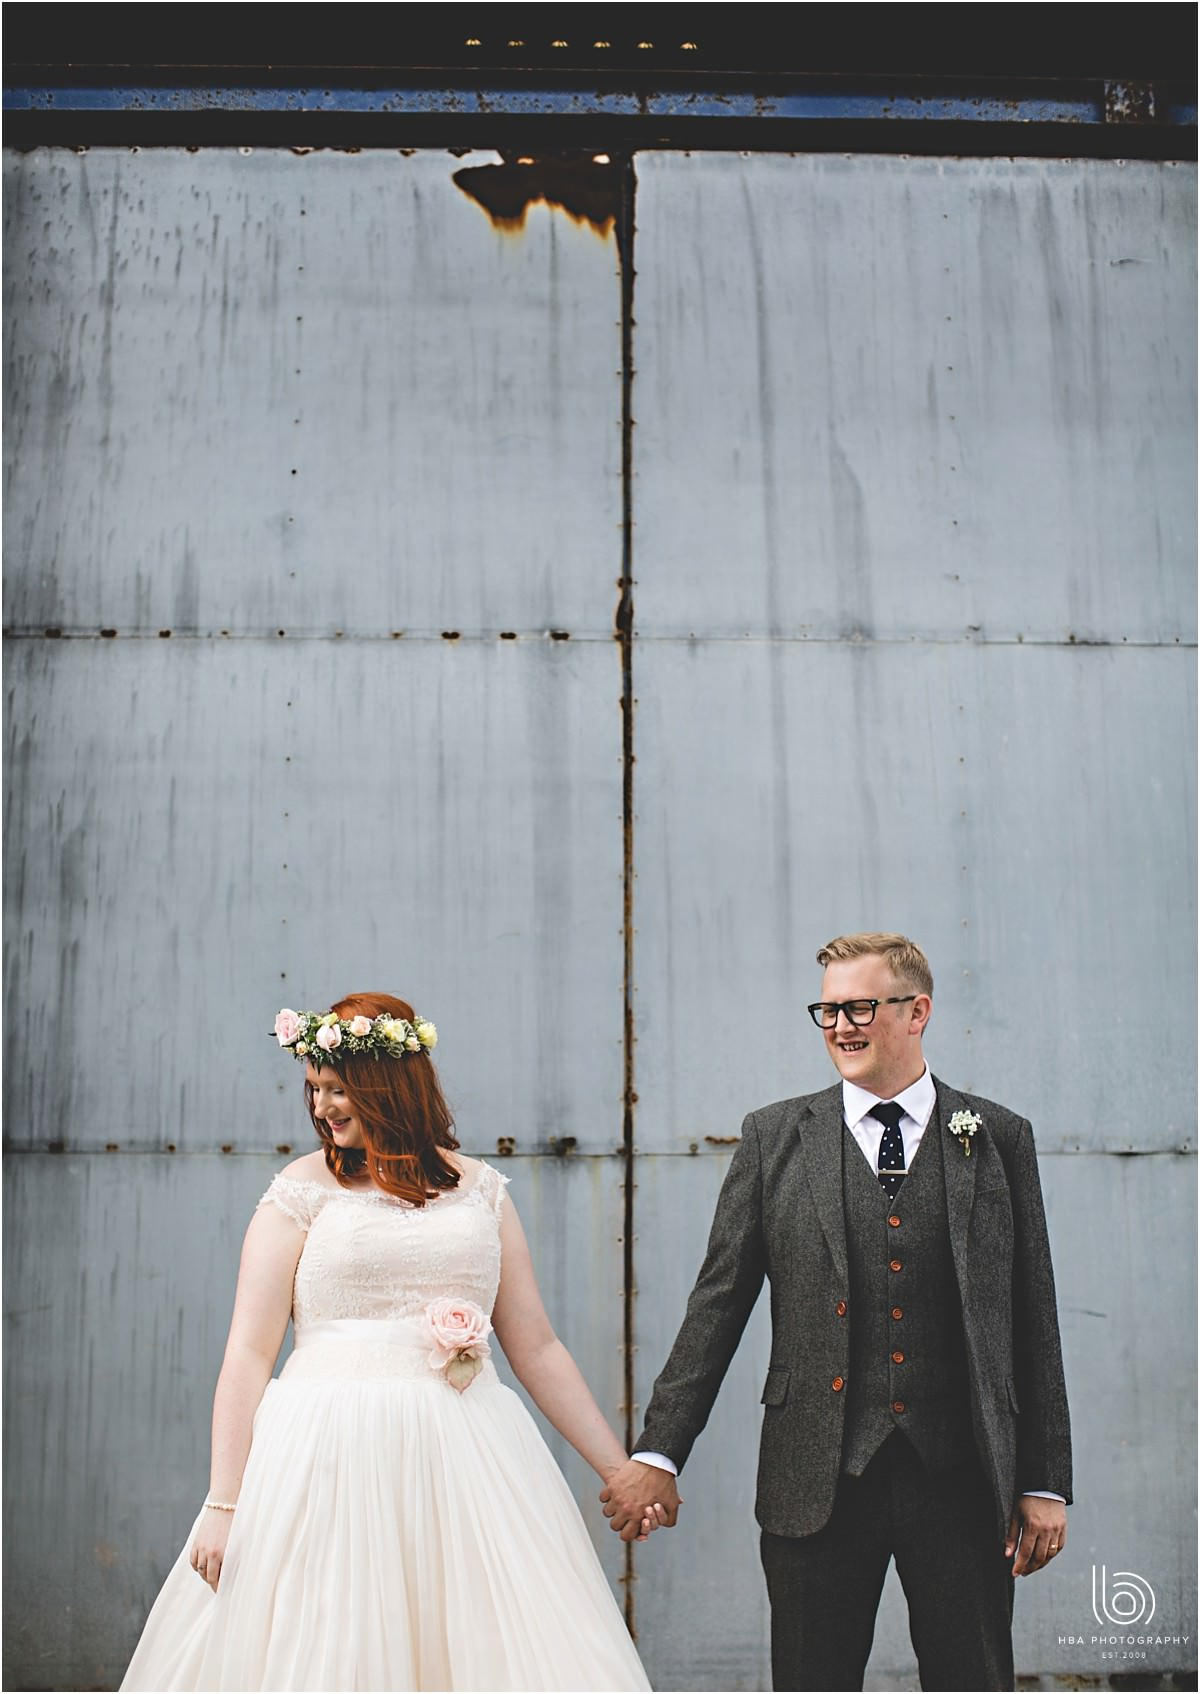 the bride and groom holding hands in front of a rustic barn door